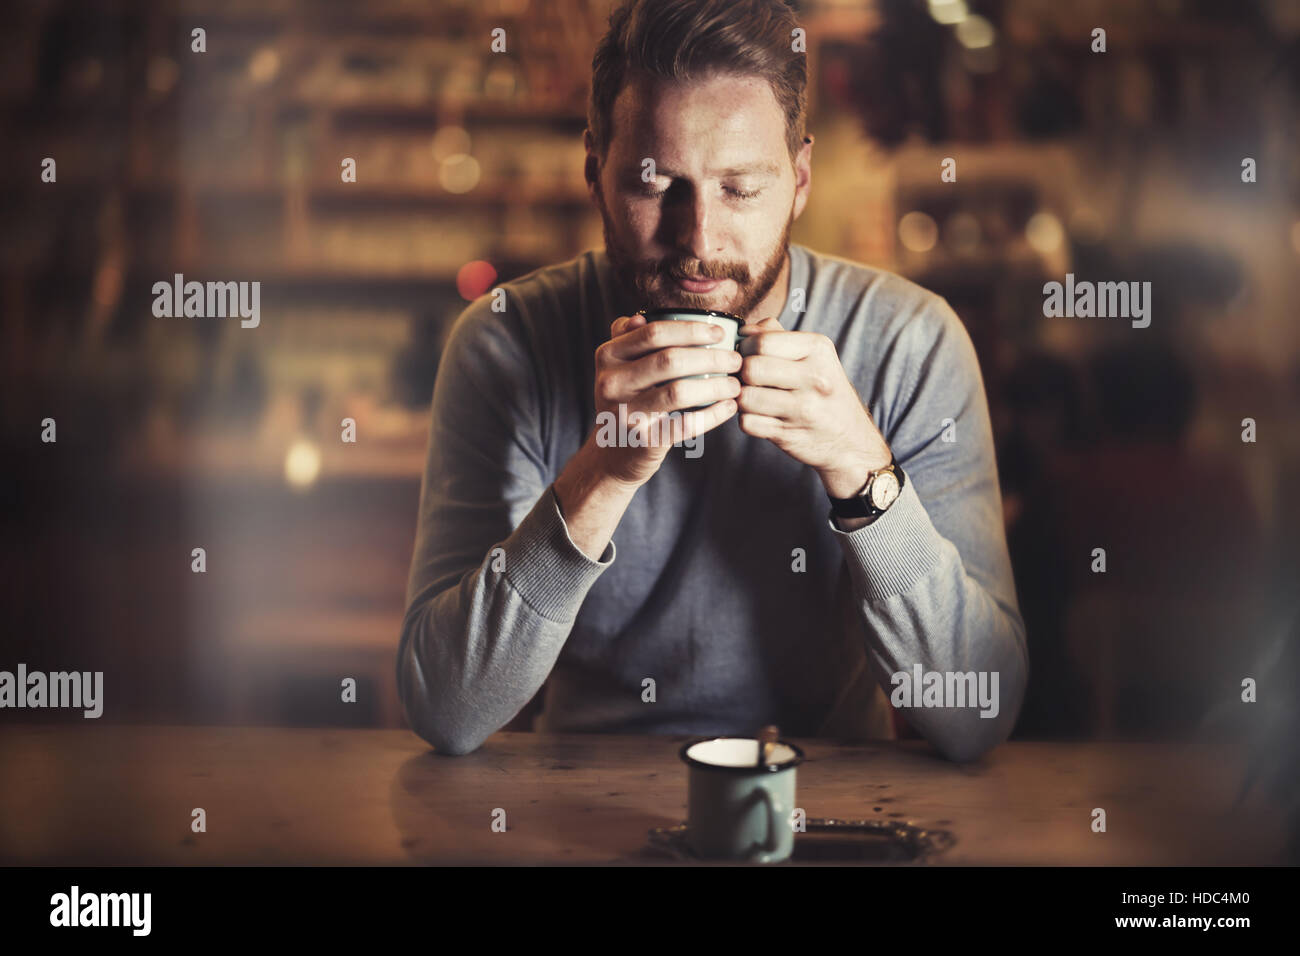 Man enjoying his aromatic cup of coffee - Stock Image